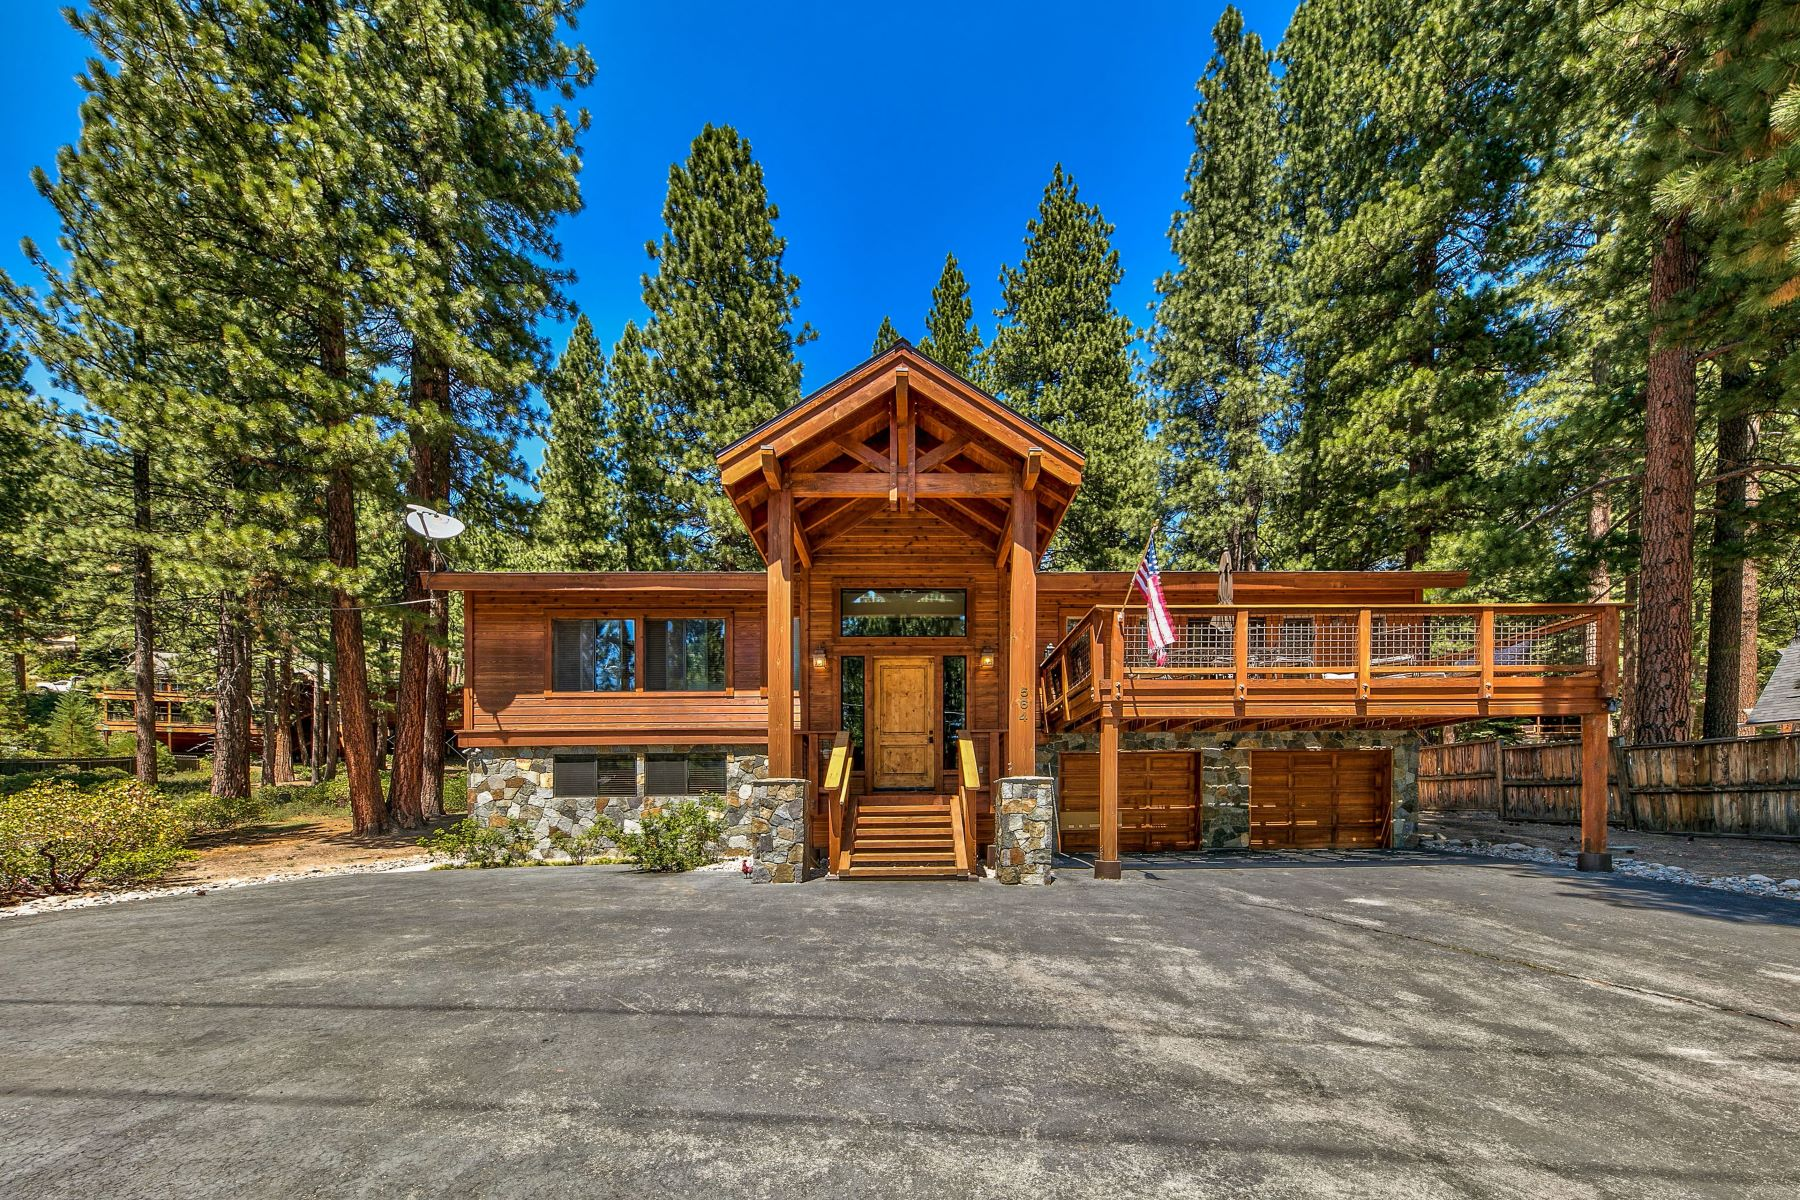 Single Family Homes for Active at Stunning Lake Tahoe Home 564 Ponderosa Incline Village, Nevada 89451 United States